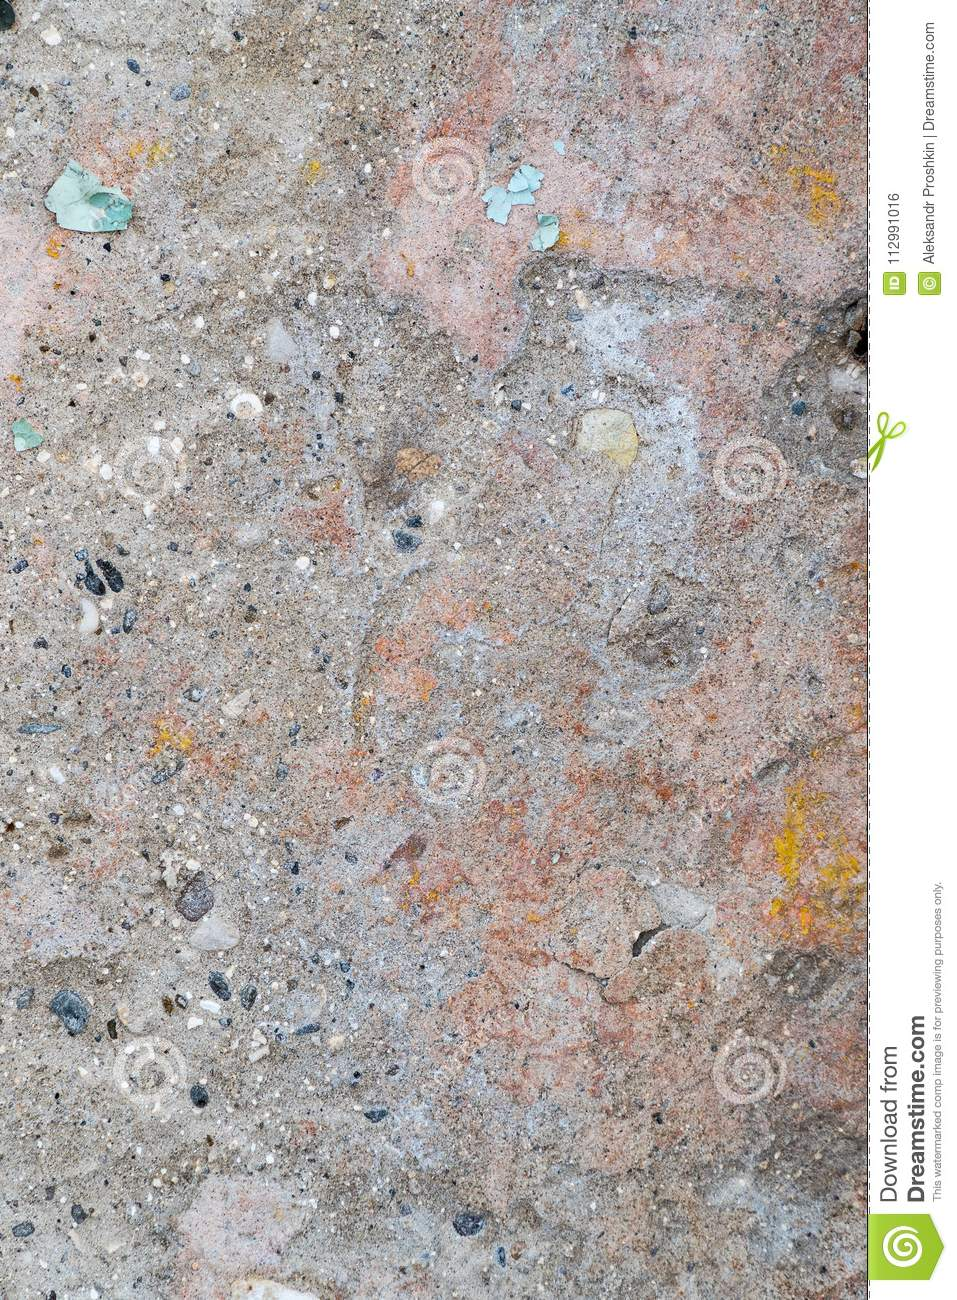 Multicolored texture on the cement wall